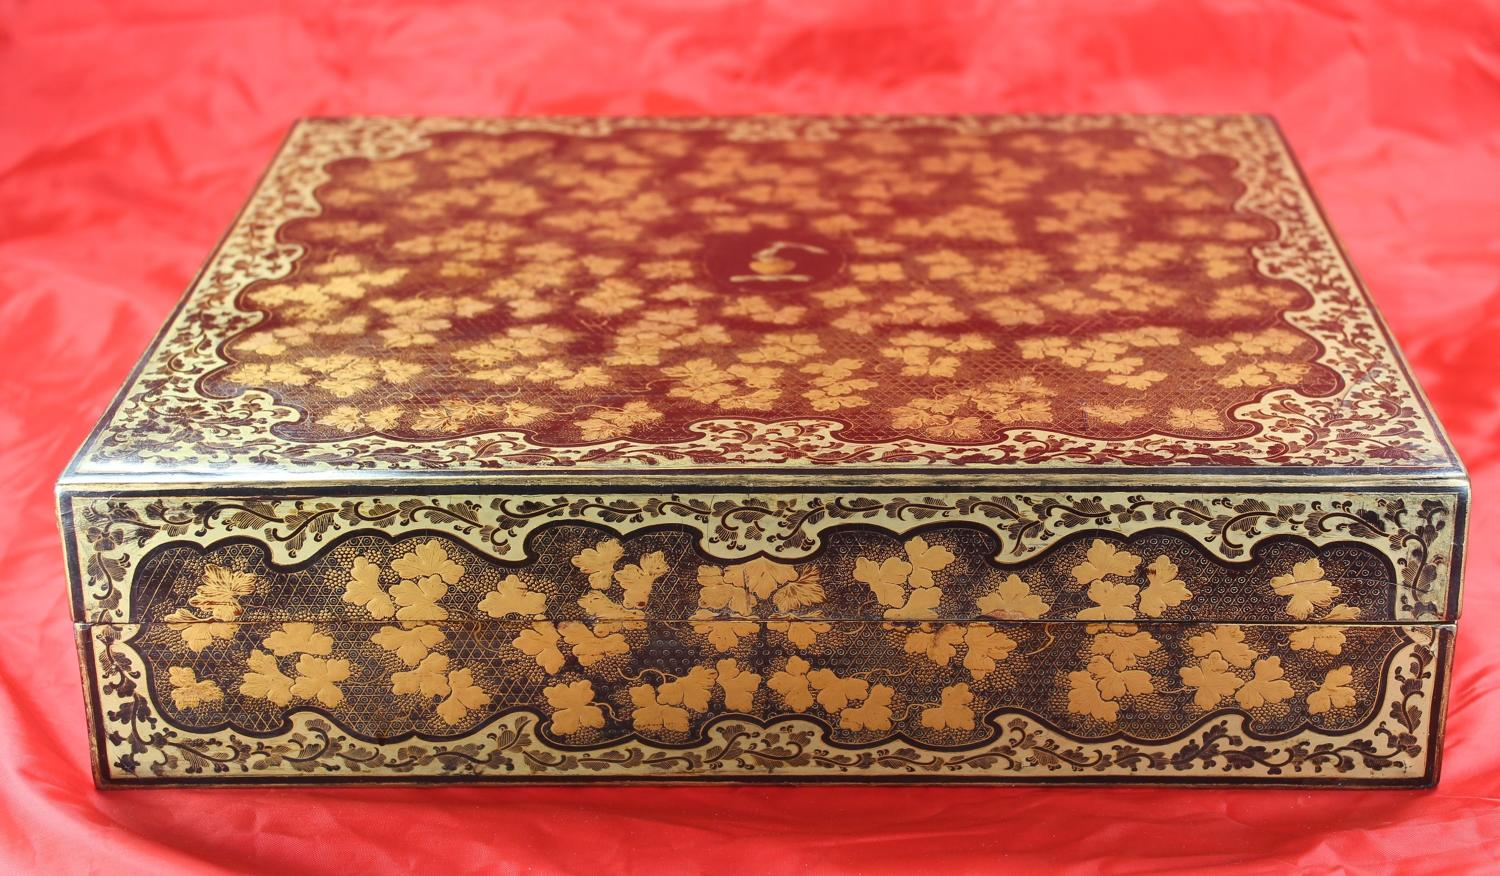 19C armorial lacquer games box with matching counters for TAYLOR